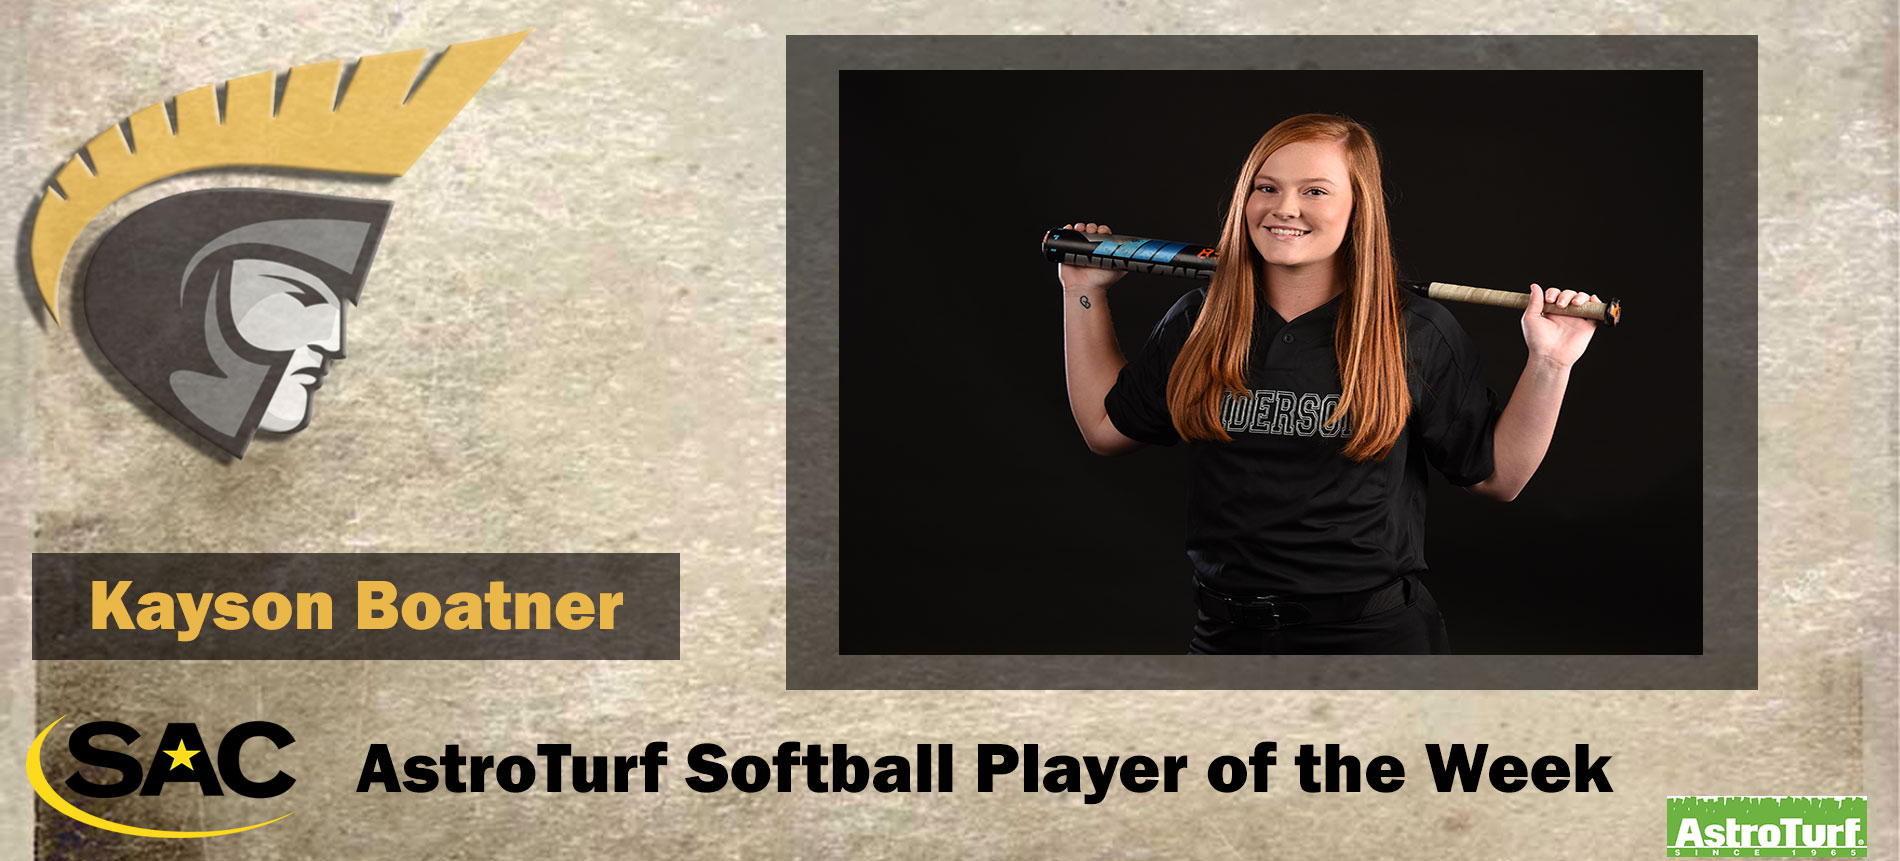 Boatner Earns South Atlantic Conference AstroTurf Softball Player of the Week